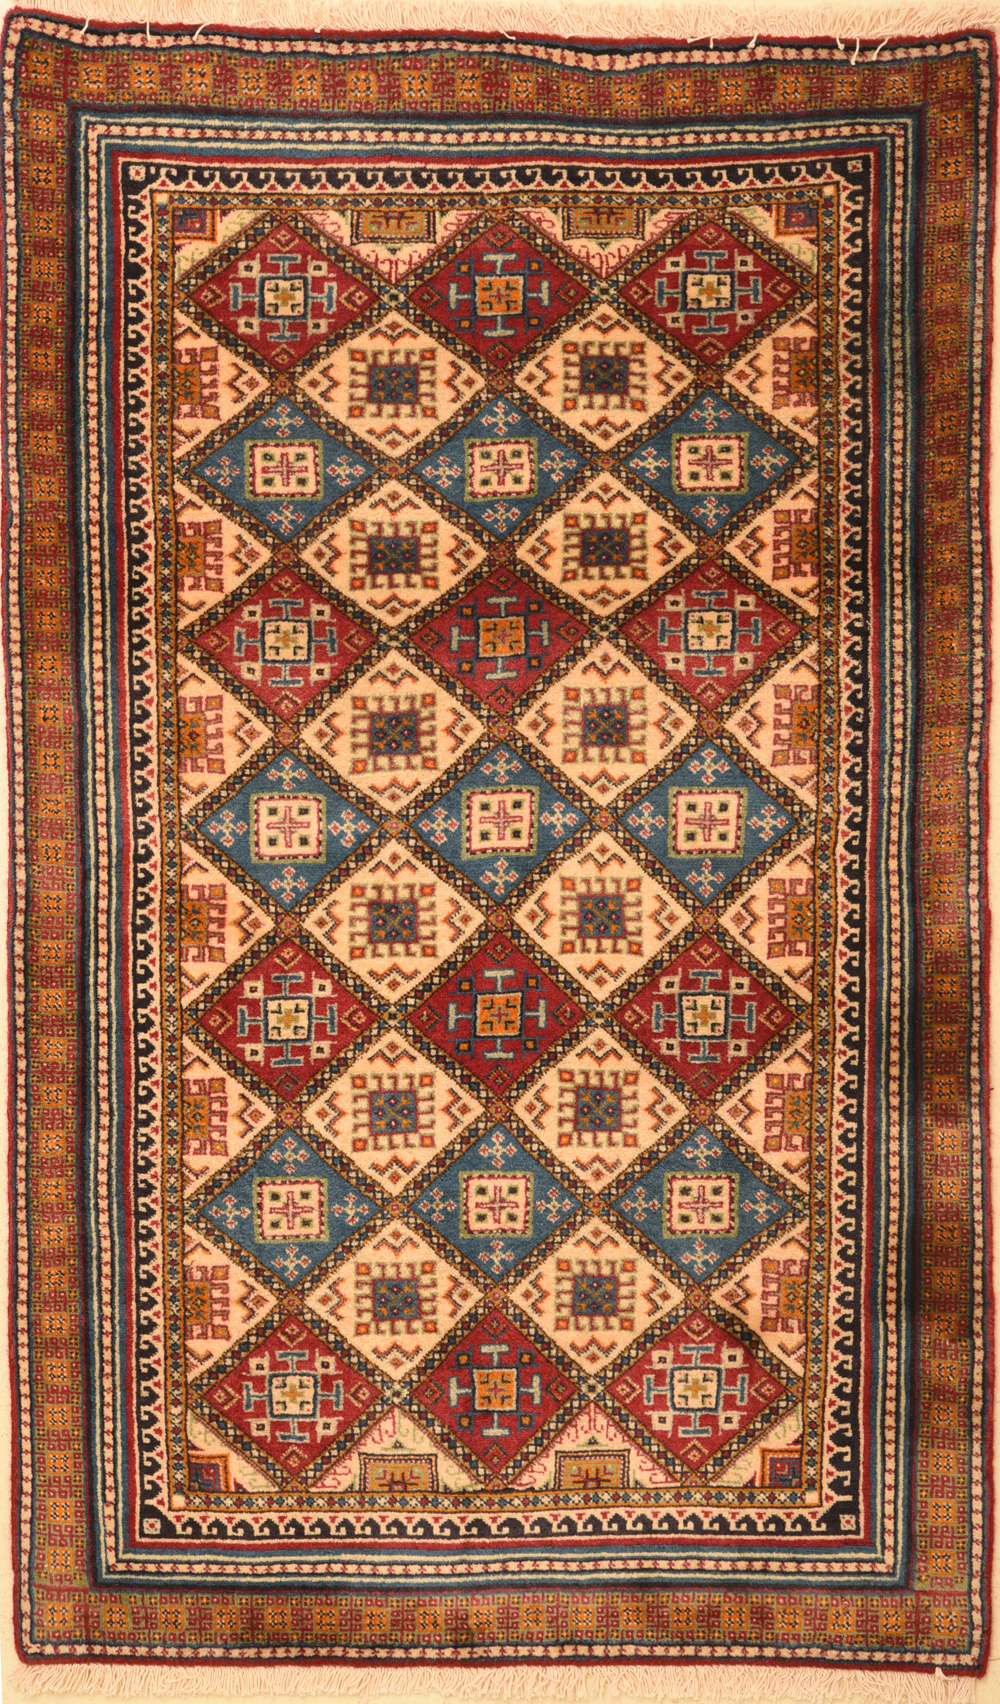 Abadeh 2 8 Quot X 4 5 Quot Catalina Rug